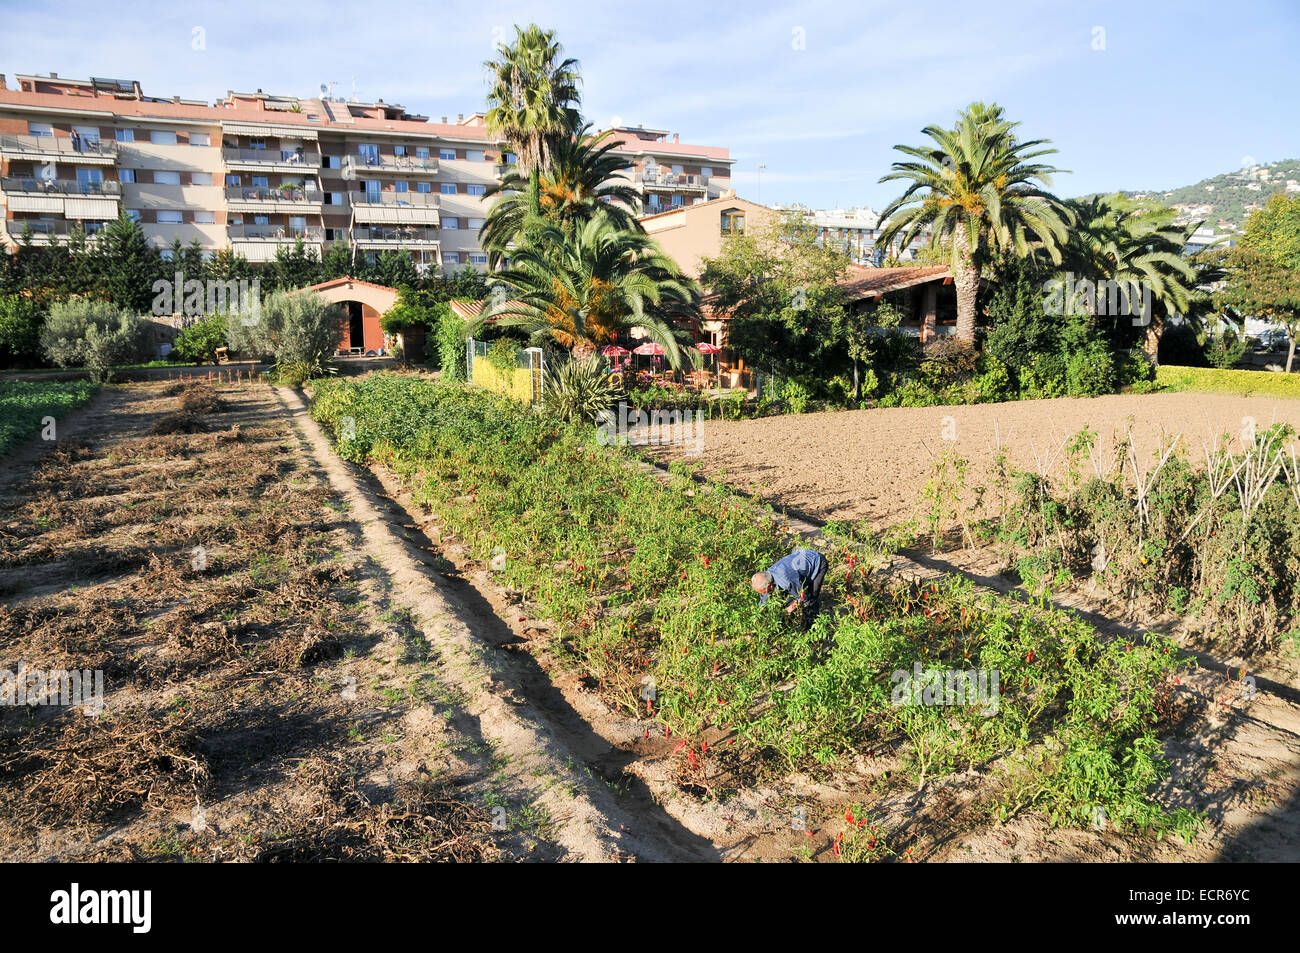 Spanish farmers works in his field. Photographed near Girona, Catalonia, Spain Stock Photo